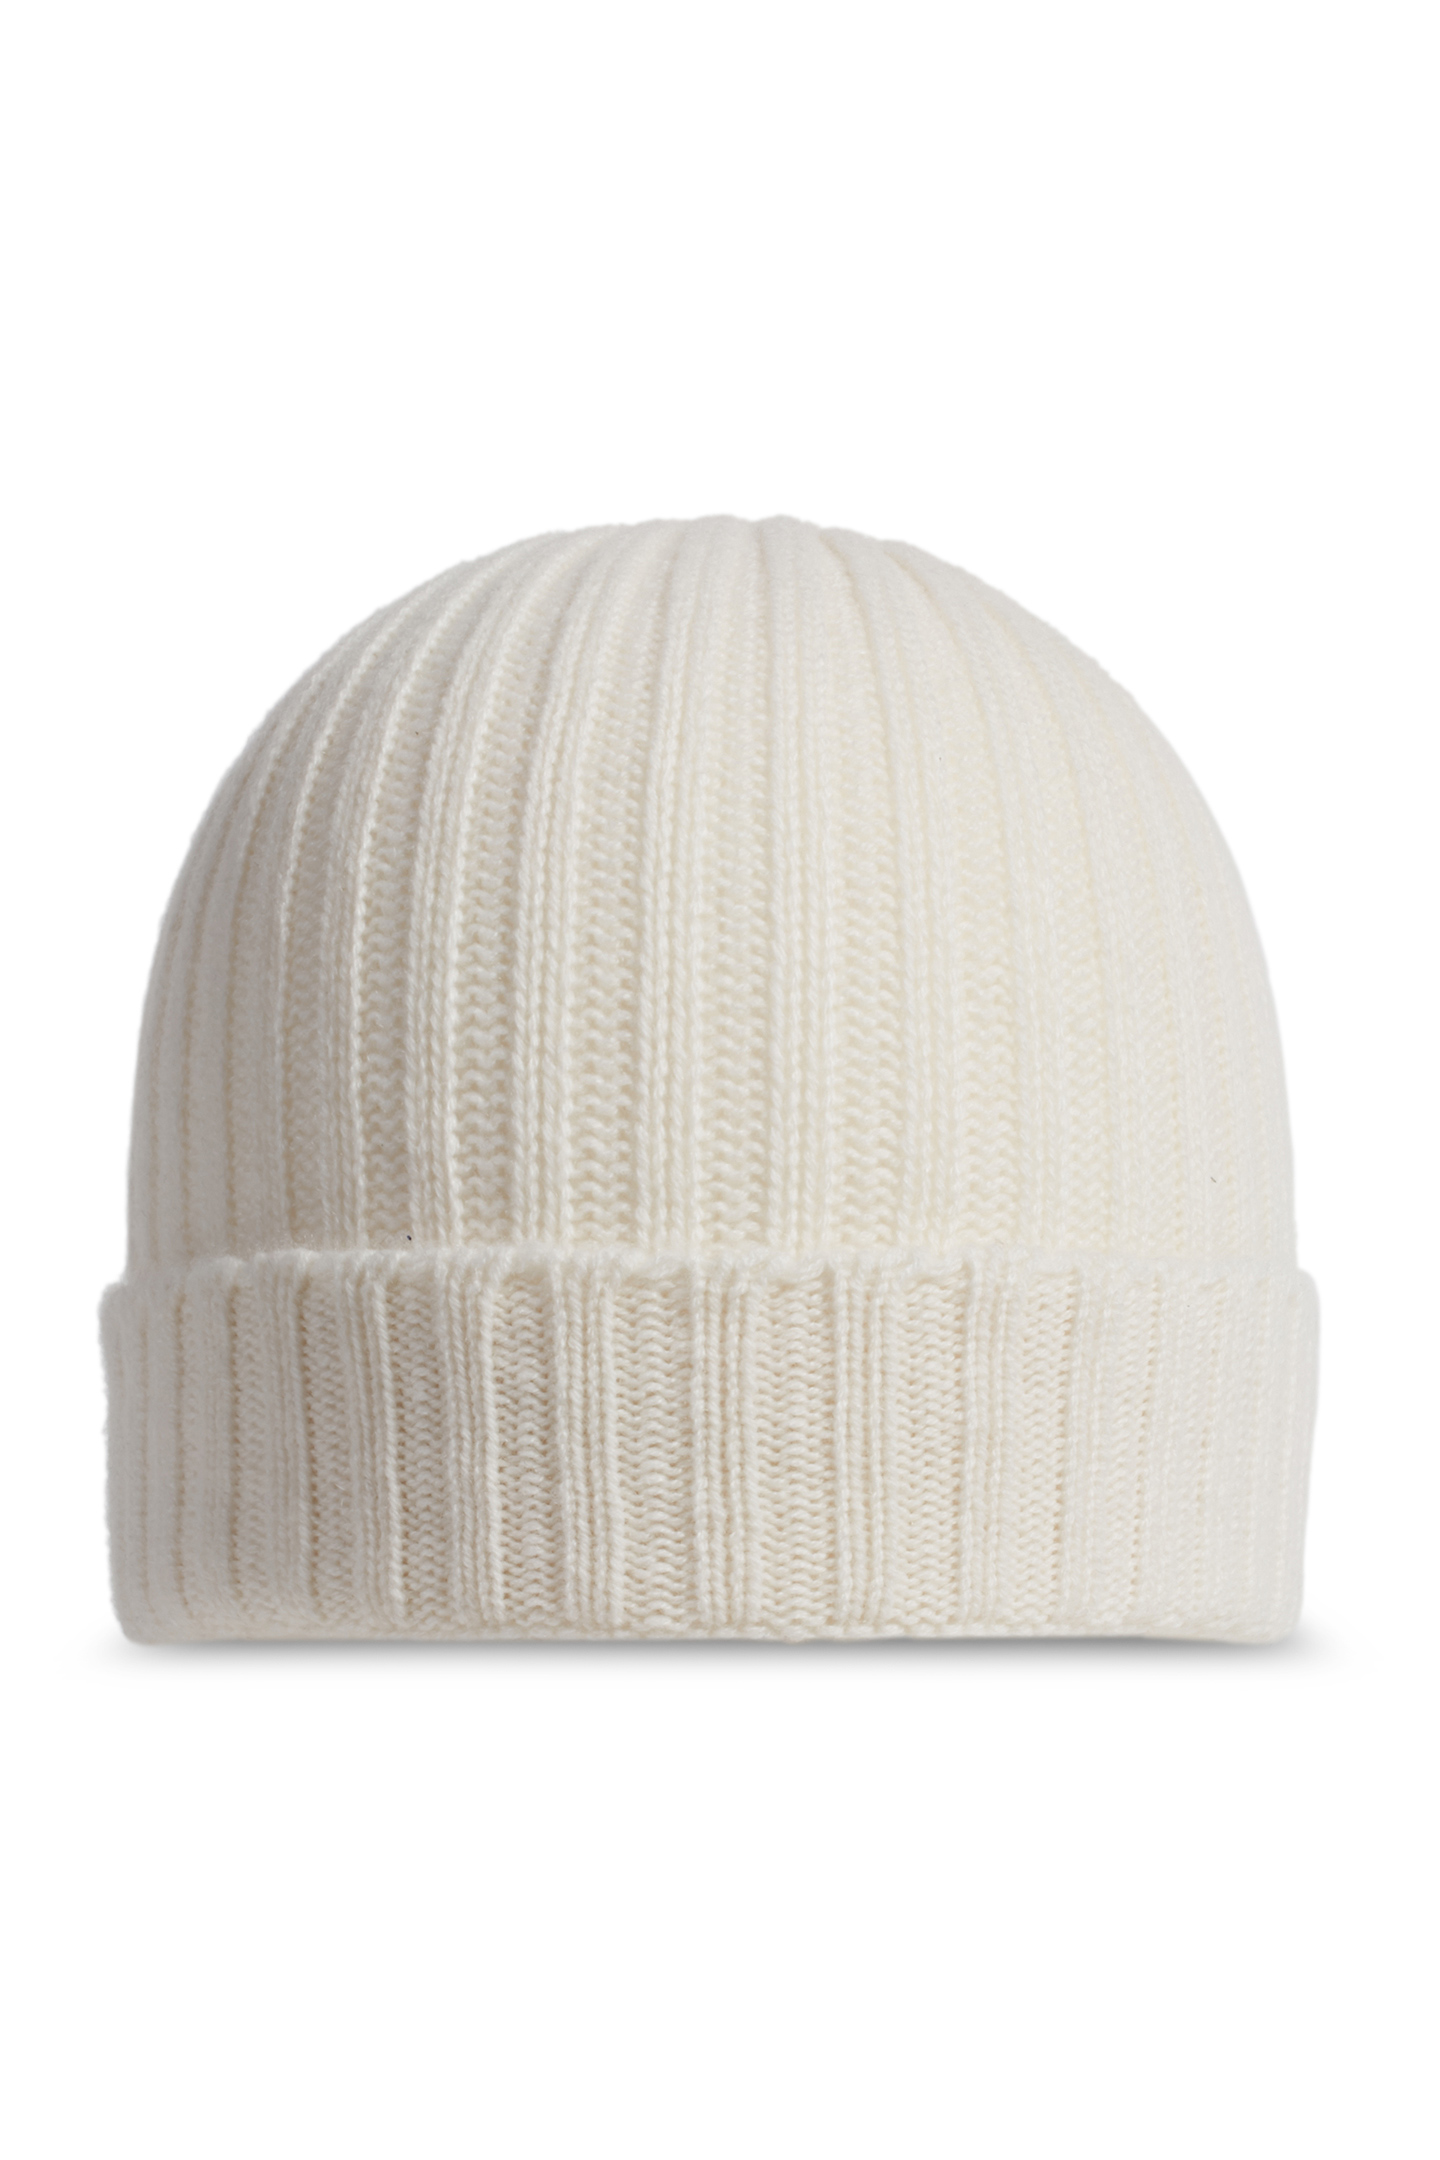 RIBBED PURE CASHMERE HAT  879df36b0ef